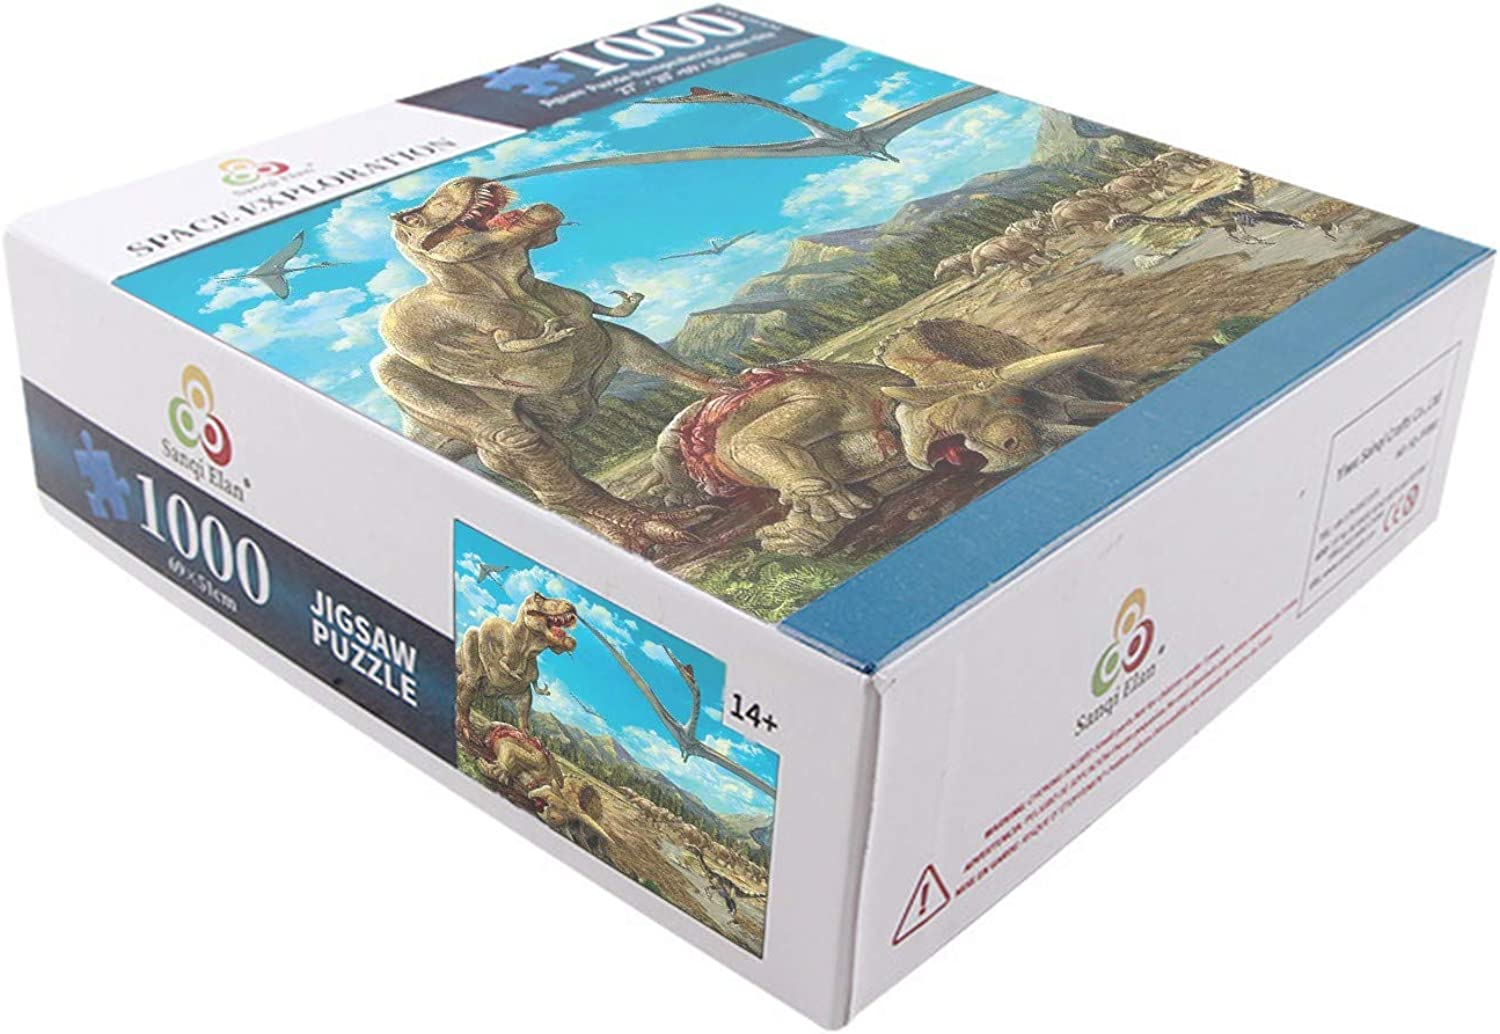 Amazon.com: Xinghe 1 Box Puzzle, 1000 Pieces of Adult ...